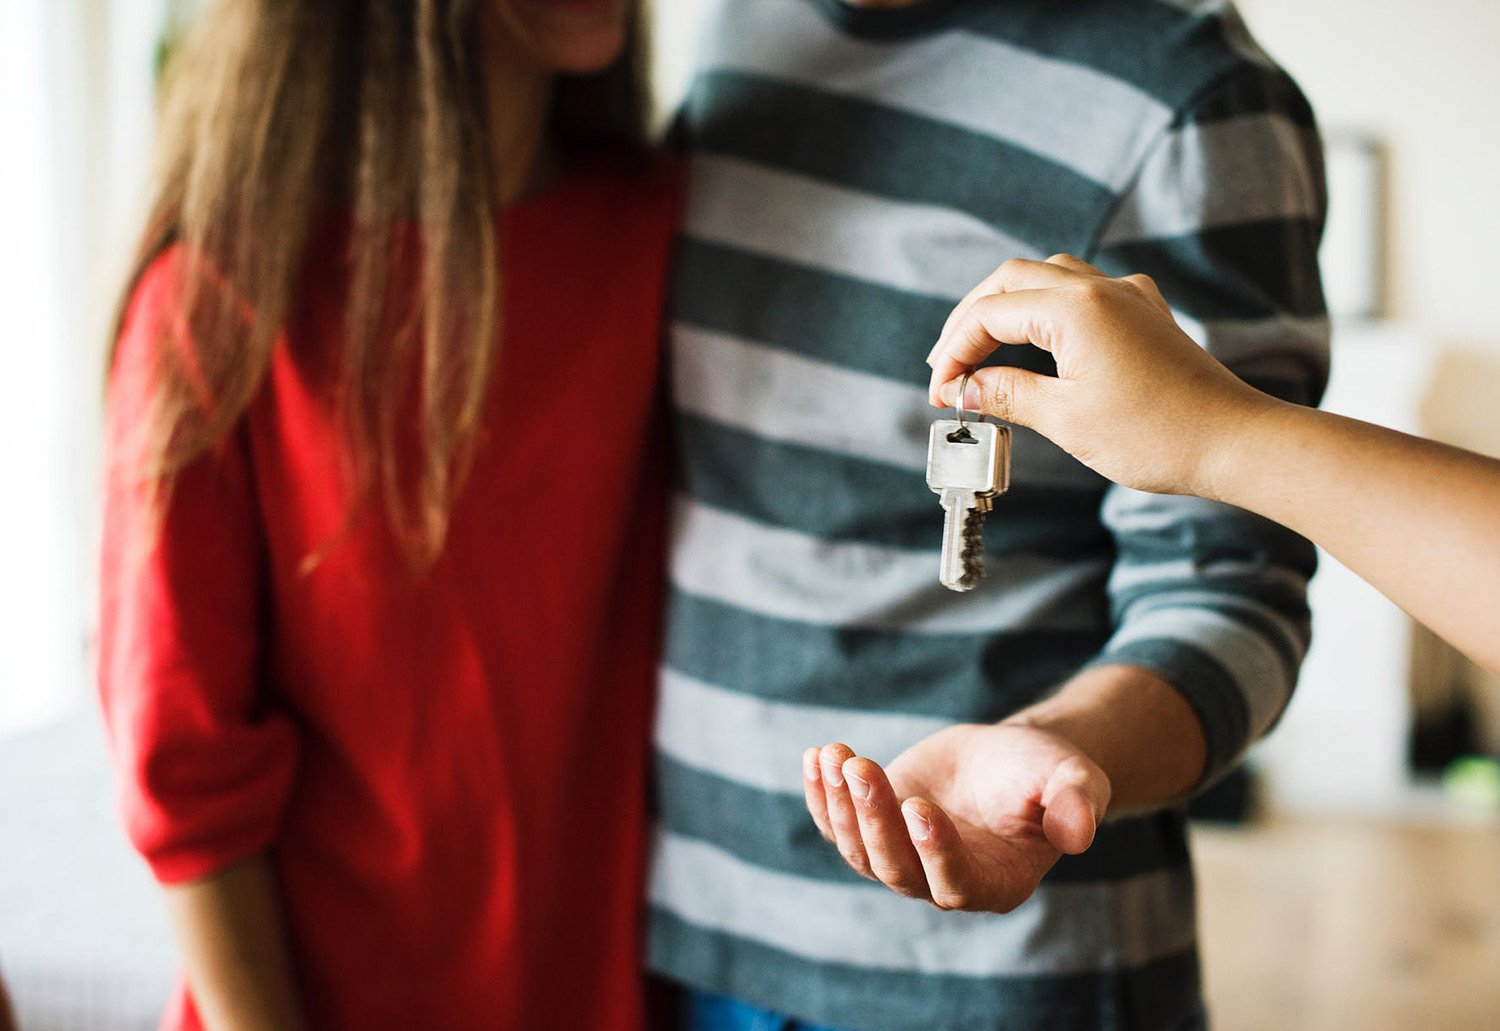 How to maximize Sale Price by making your Home Desirable for Buyers